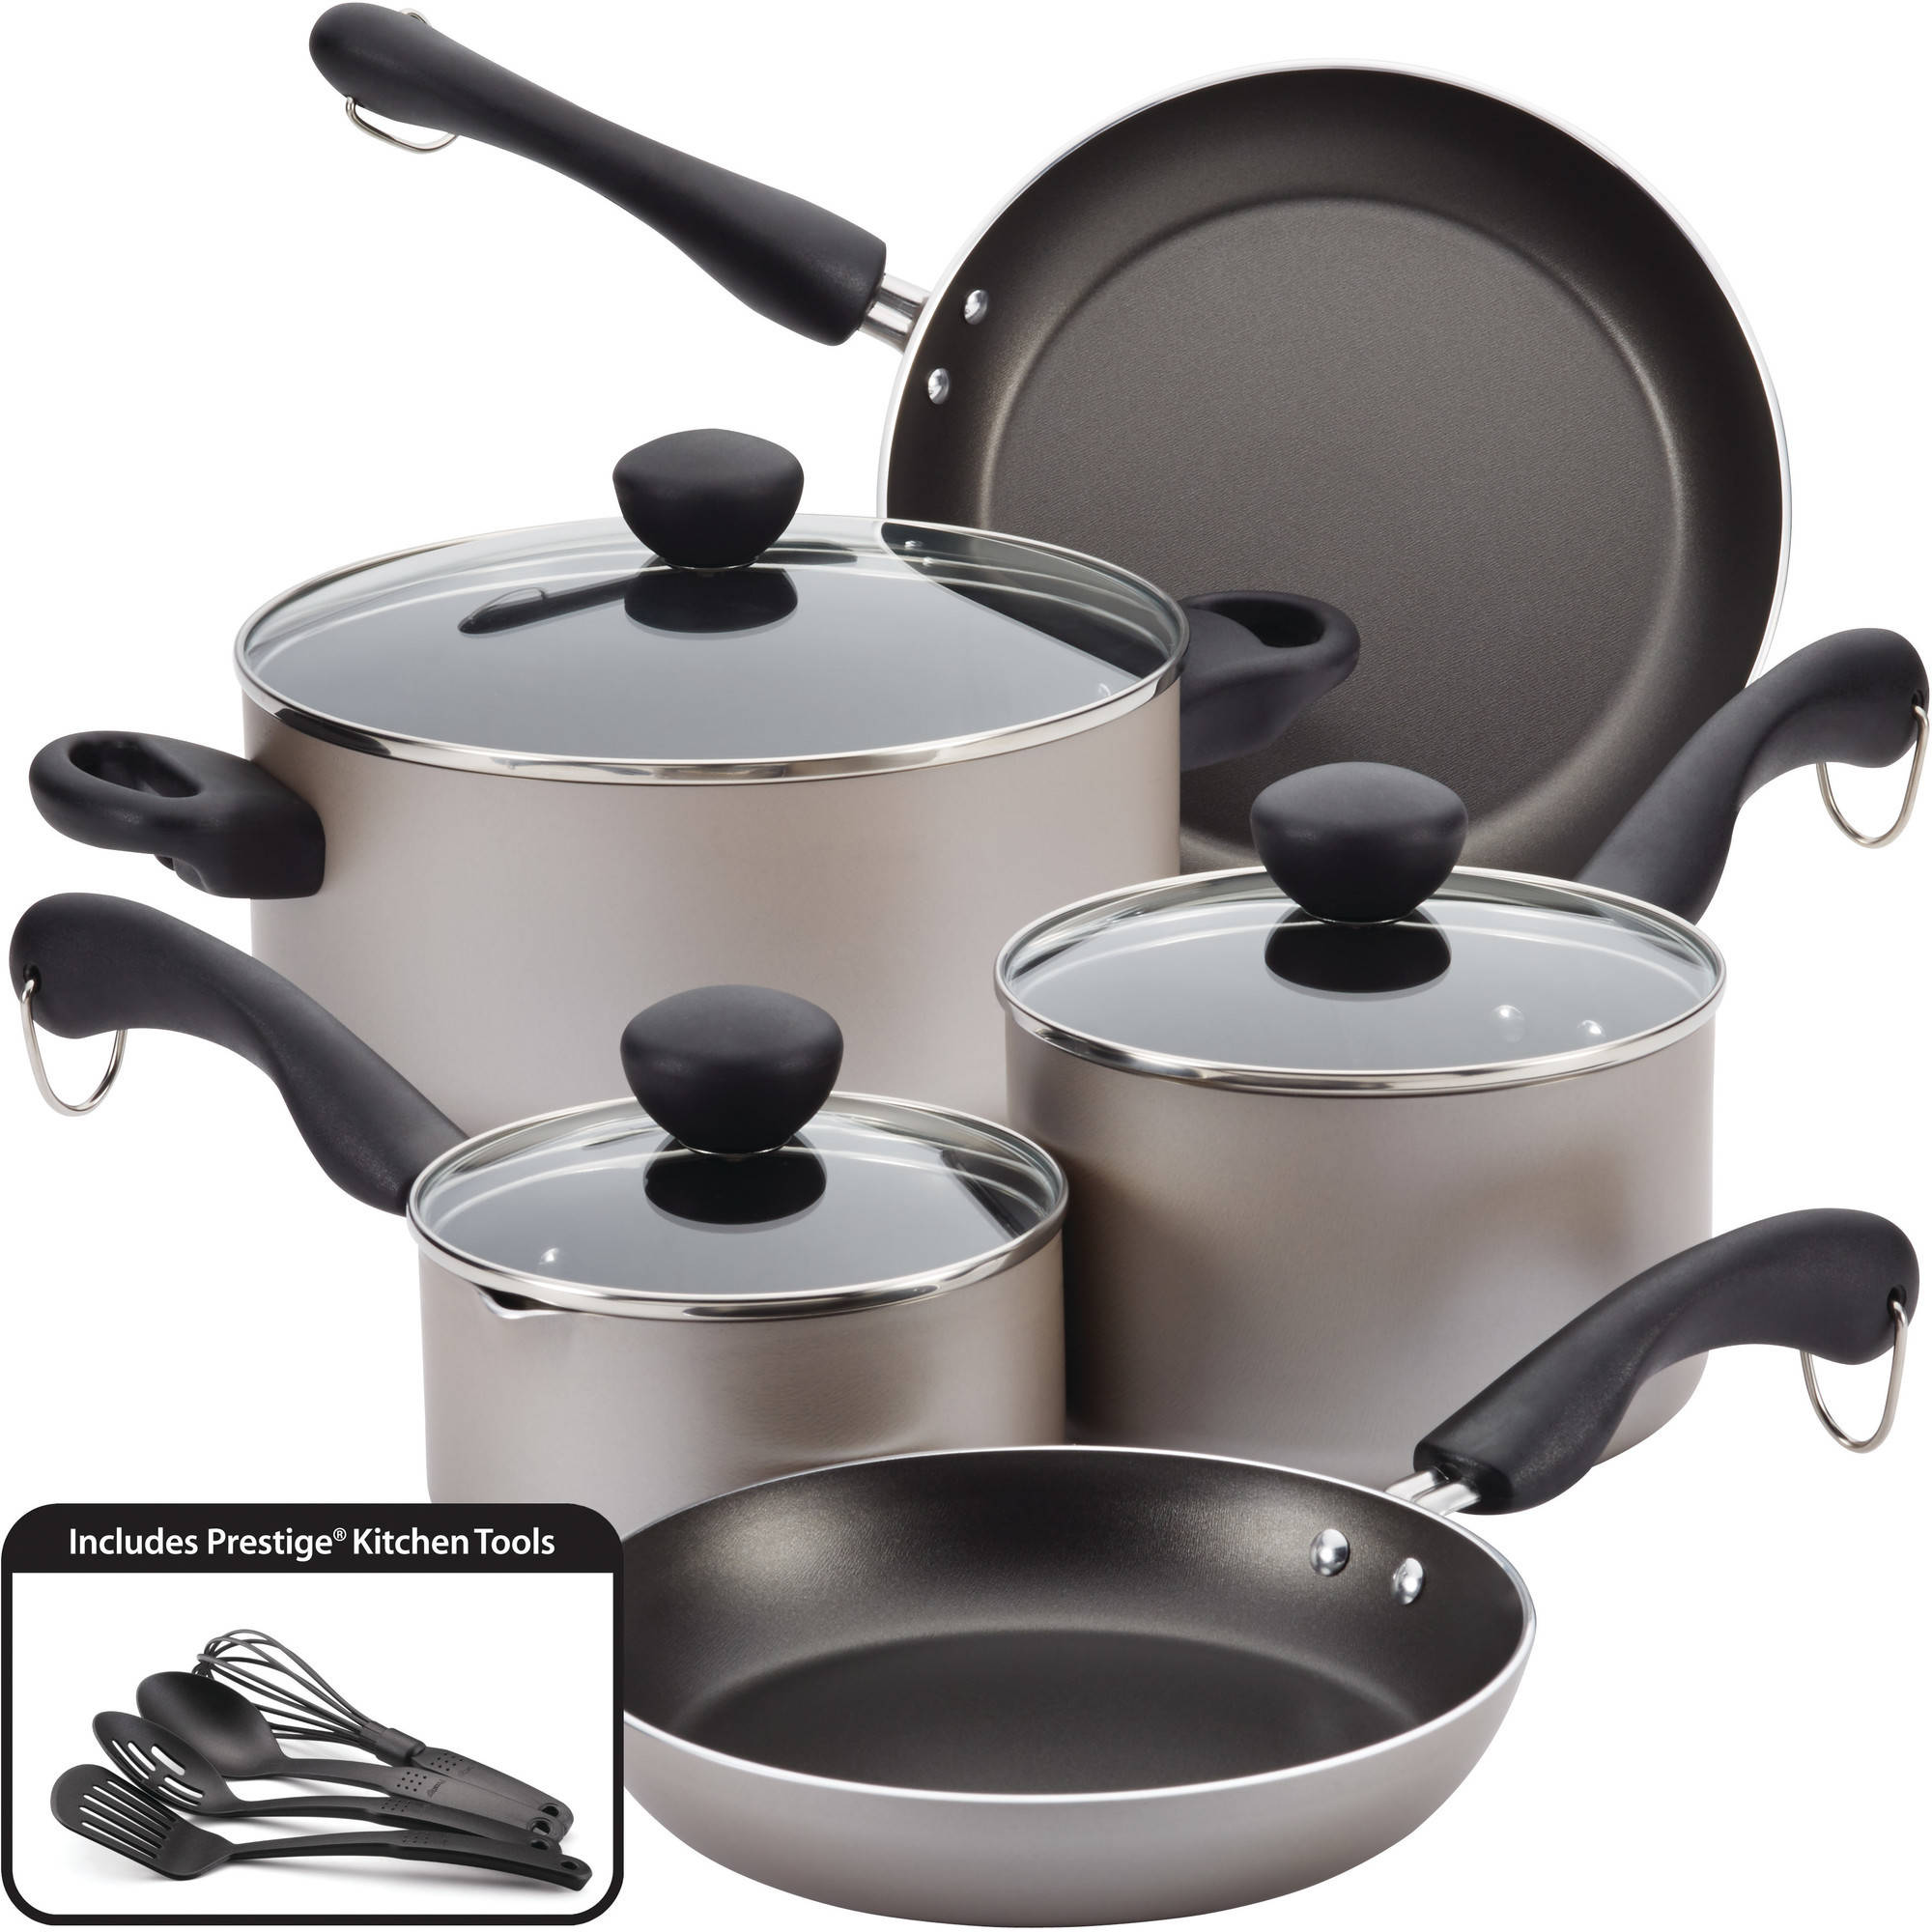 Farberware Easy Clean Dishwasher Safe Aluminum Nonstick 12-Piece Cookware Set